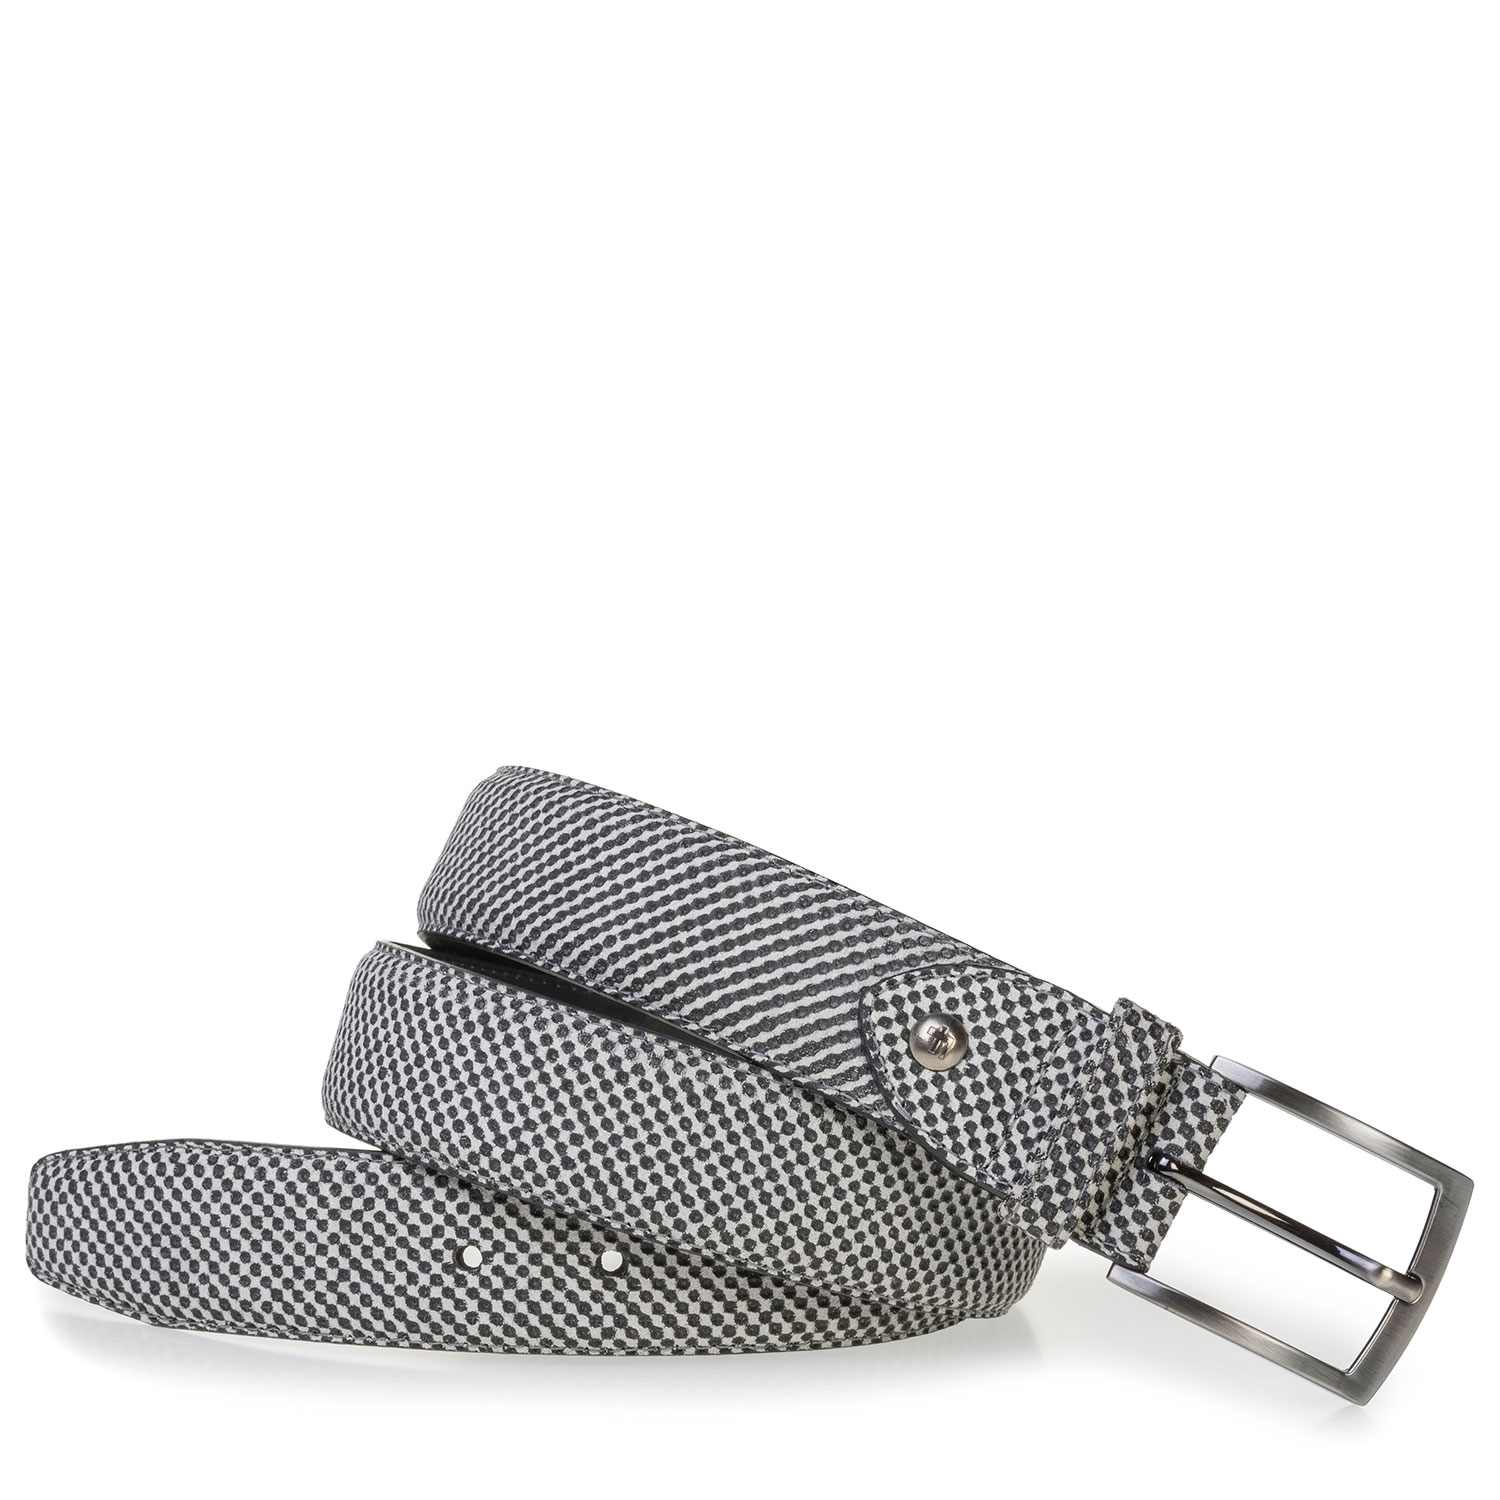 75201/75 - Grey suede leather belt with print